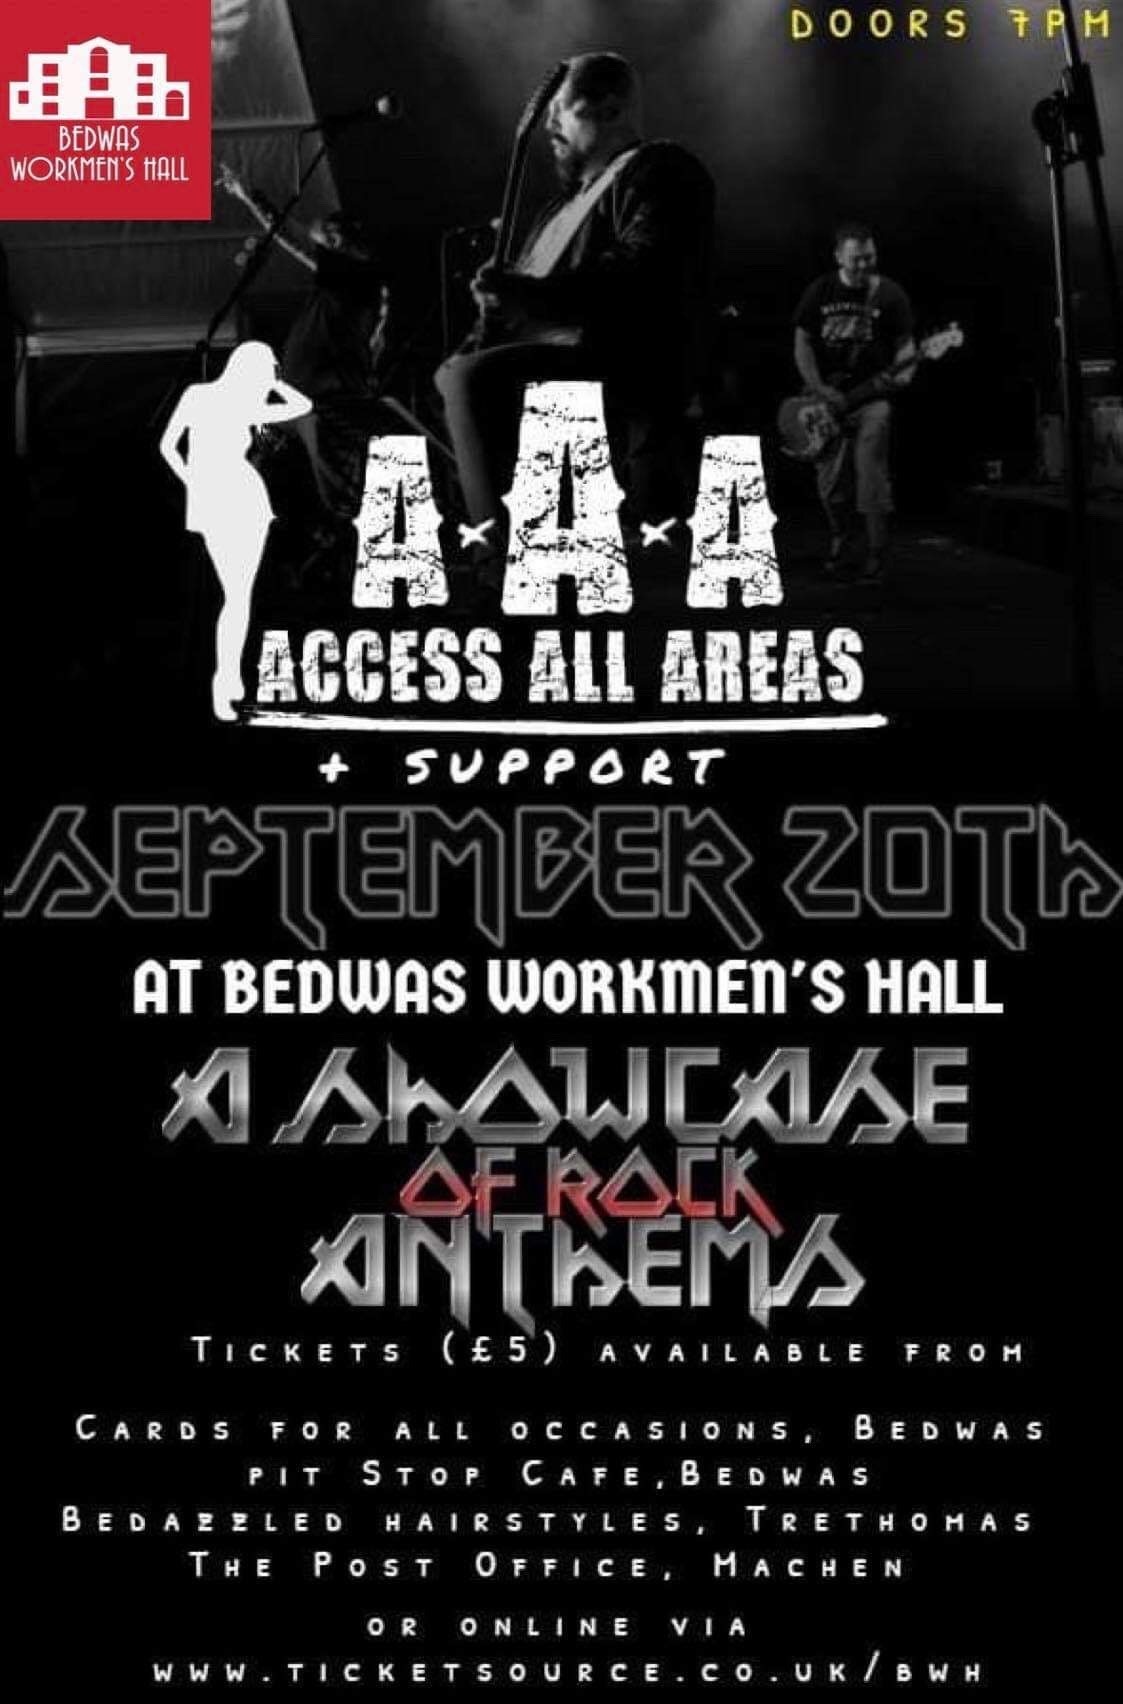 Access All Areas & Support banner image